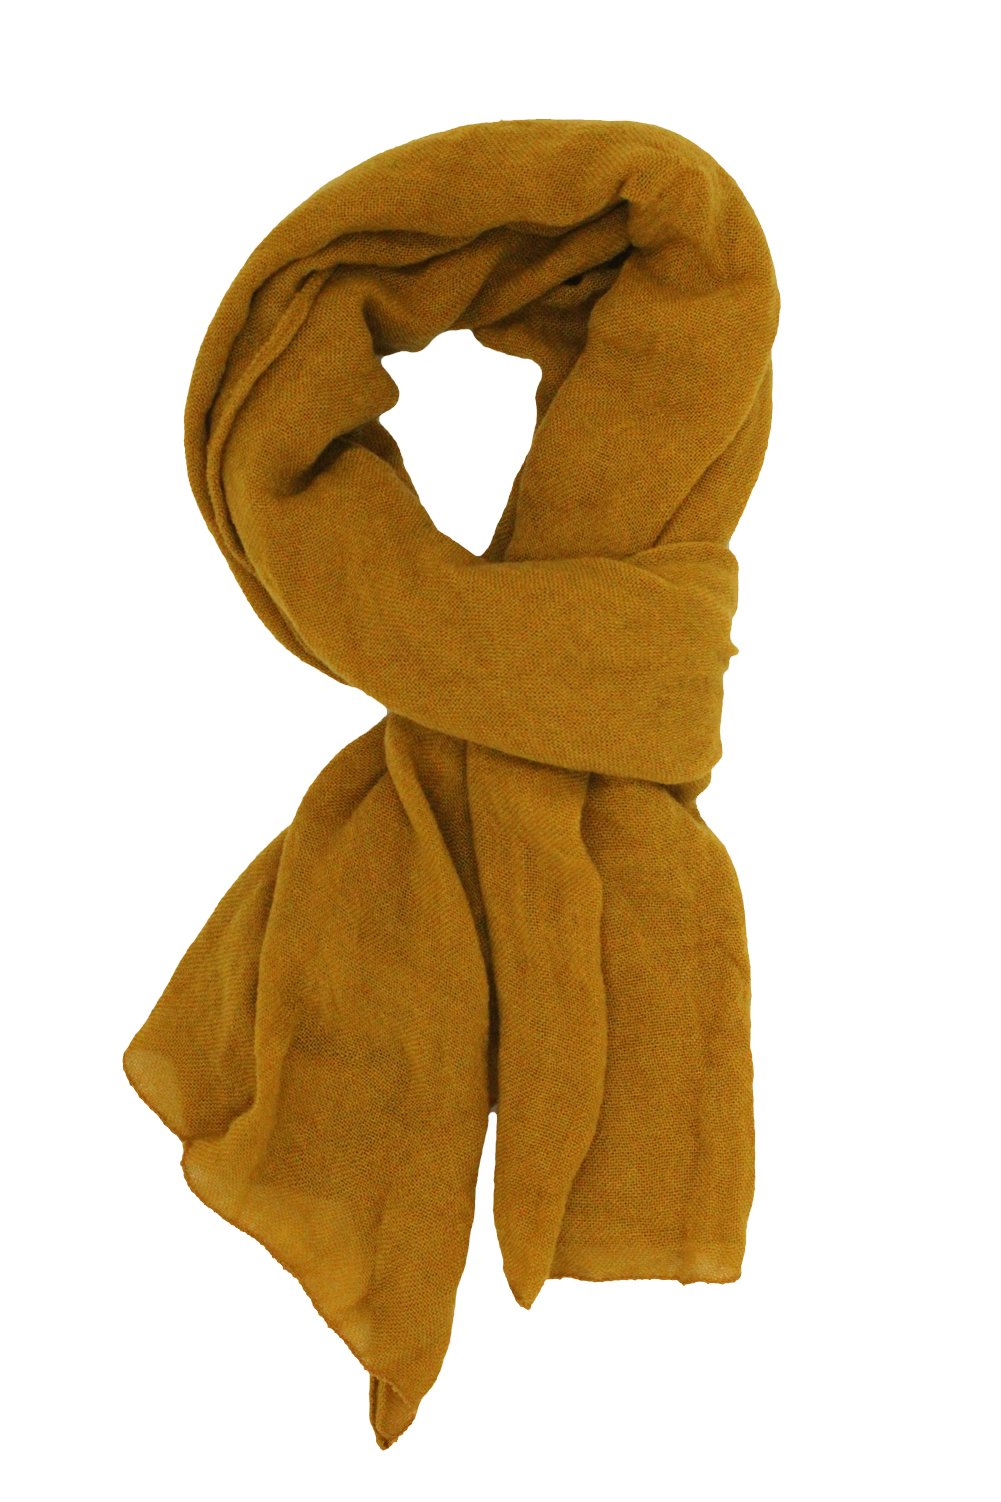 Soft Long Scarfs For Women Lightweight Warm Shawl Wrap Fall Blanket Solid Color (Deep Yellow)